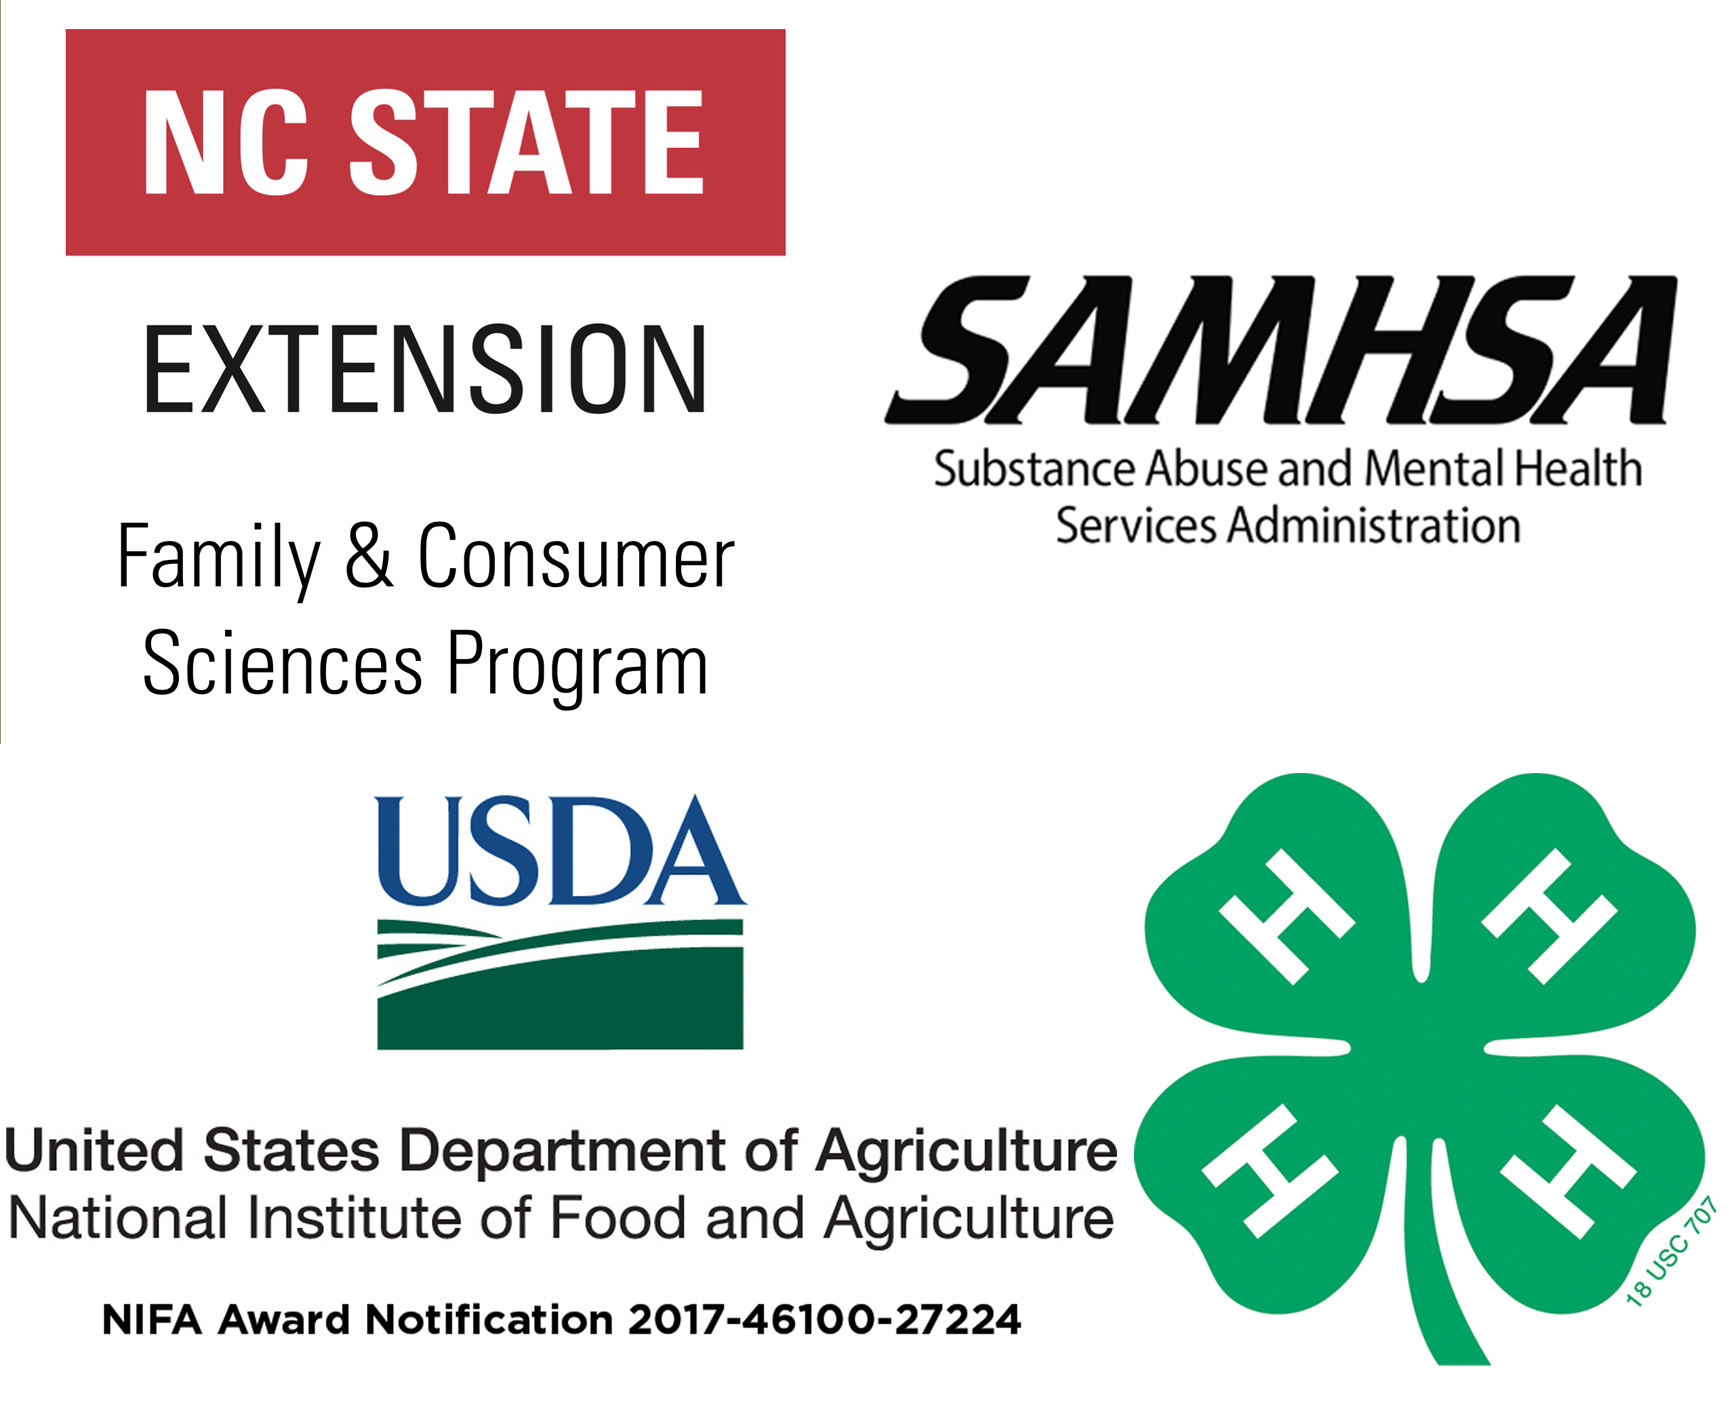 NCSU Extension FCS, SAMHSA, USDA, and 4H logos